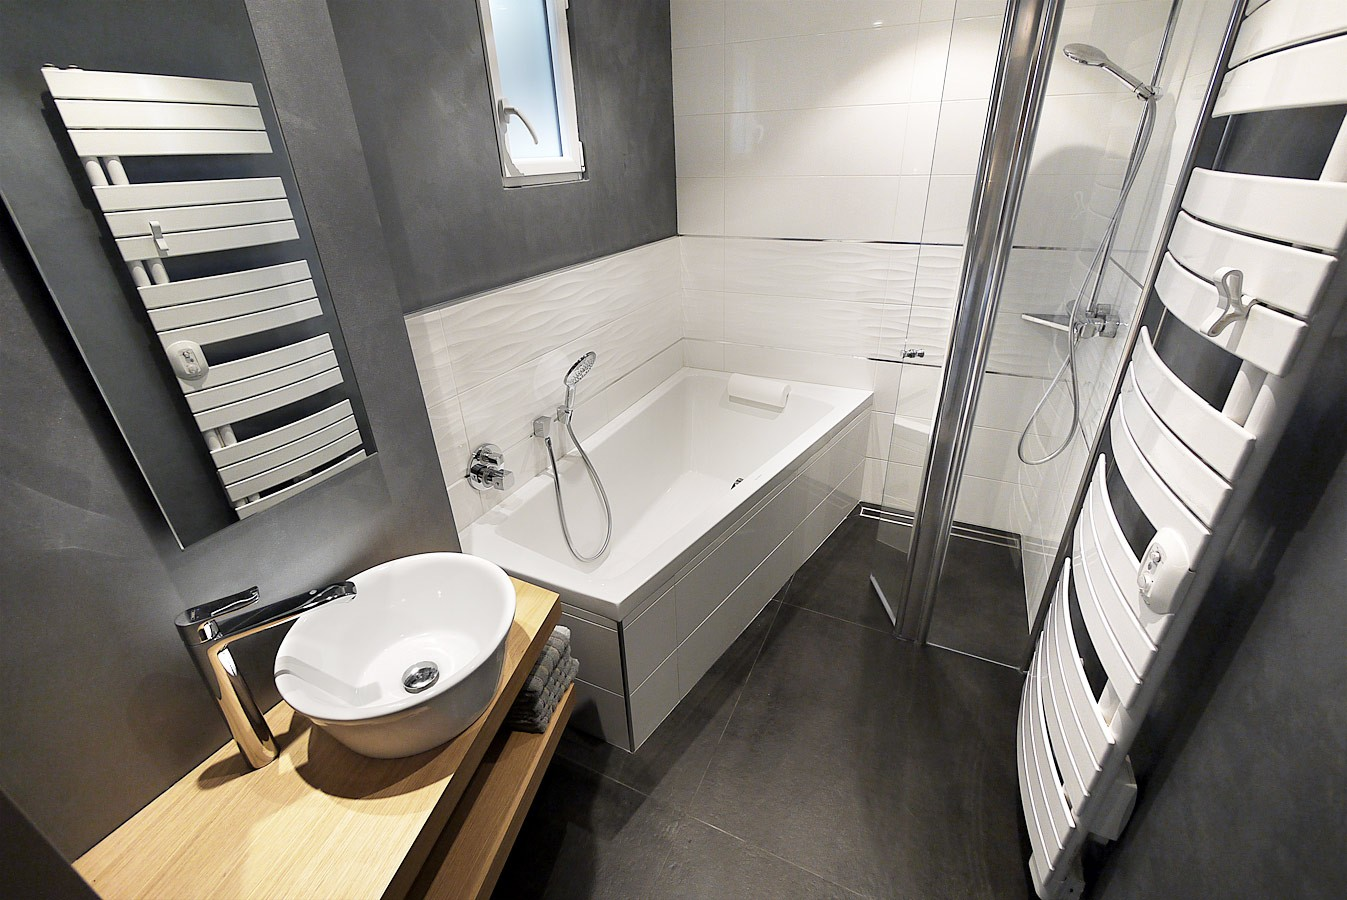 Architecte d interieur angers for Architecte salle de bain